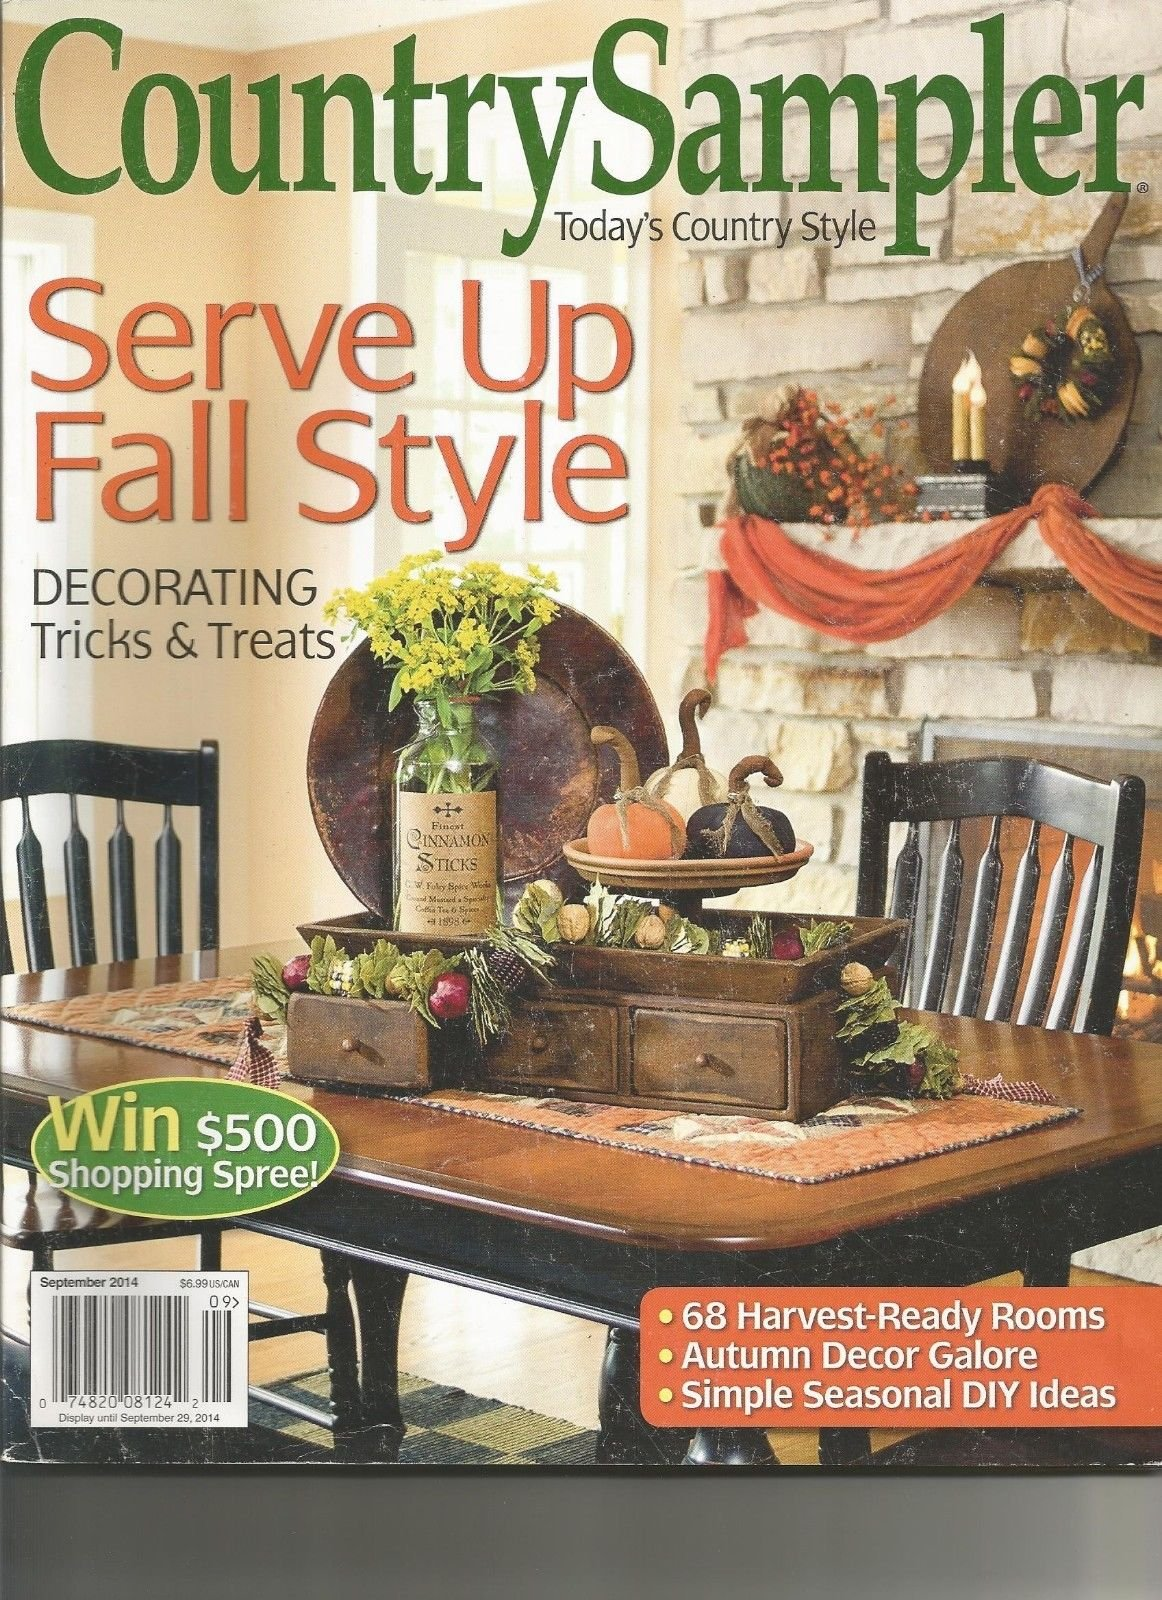 COUNTRY SAMPLER, SEPTEMBER, 2014 (SERVE UP FALL STYLE)